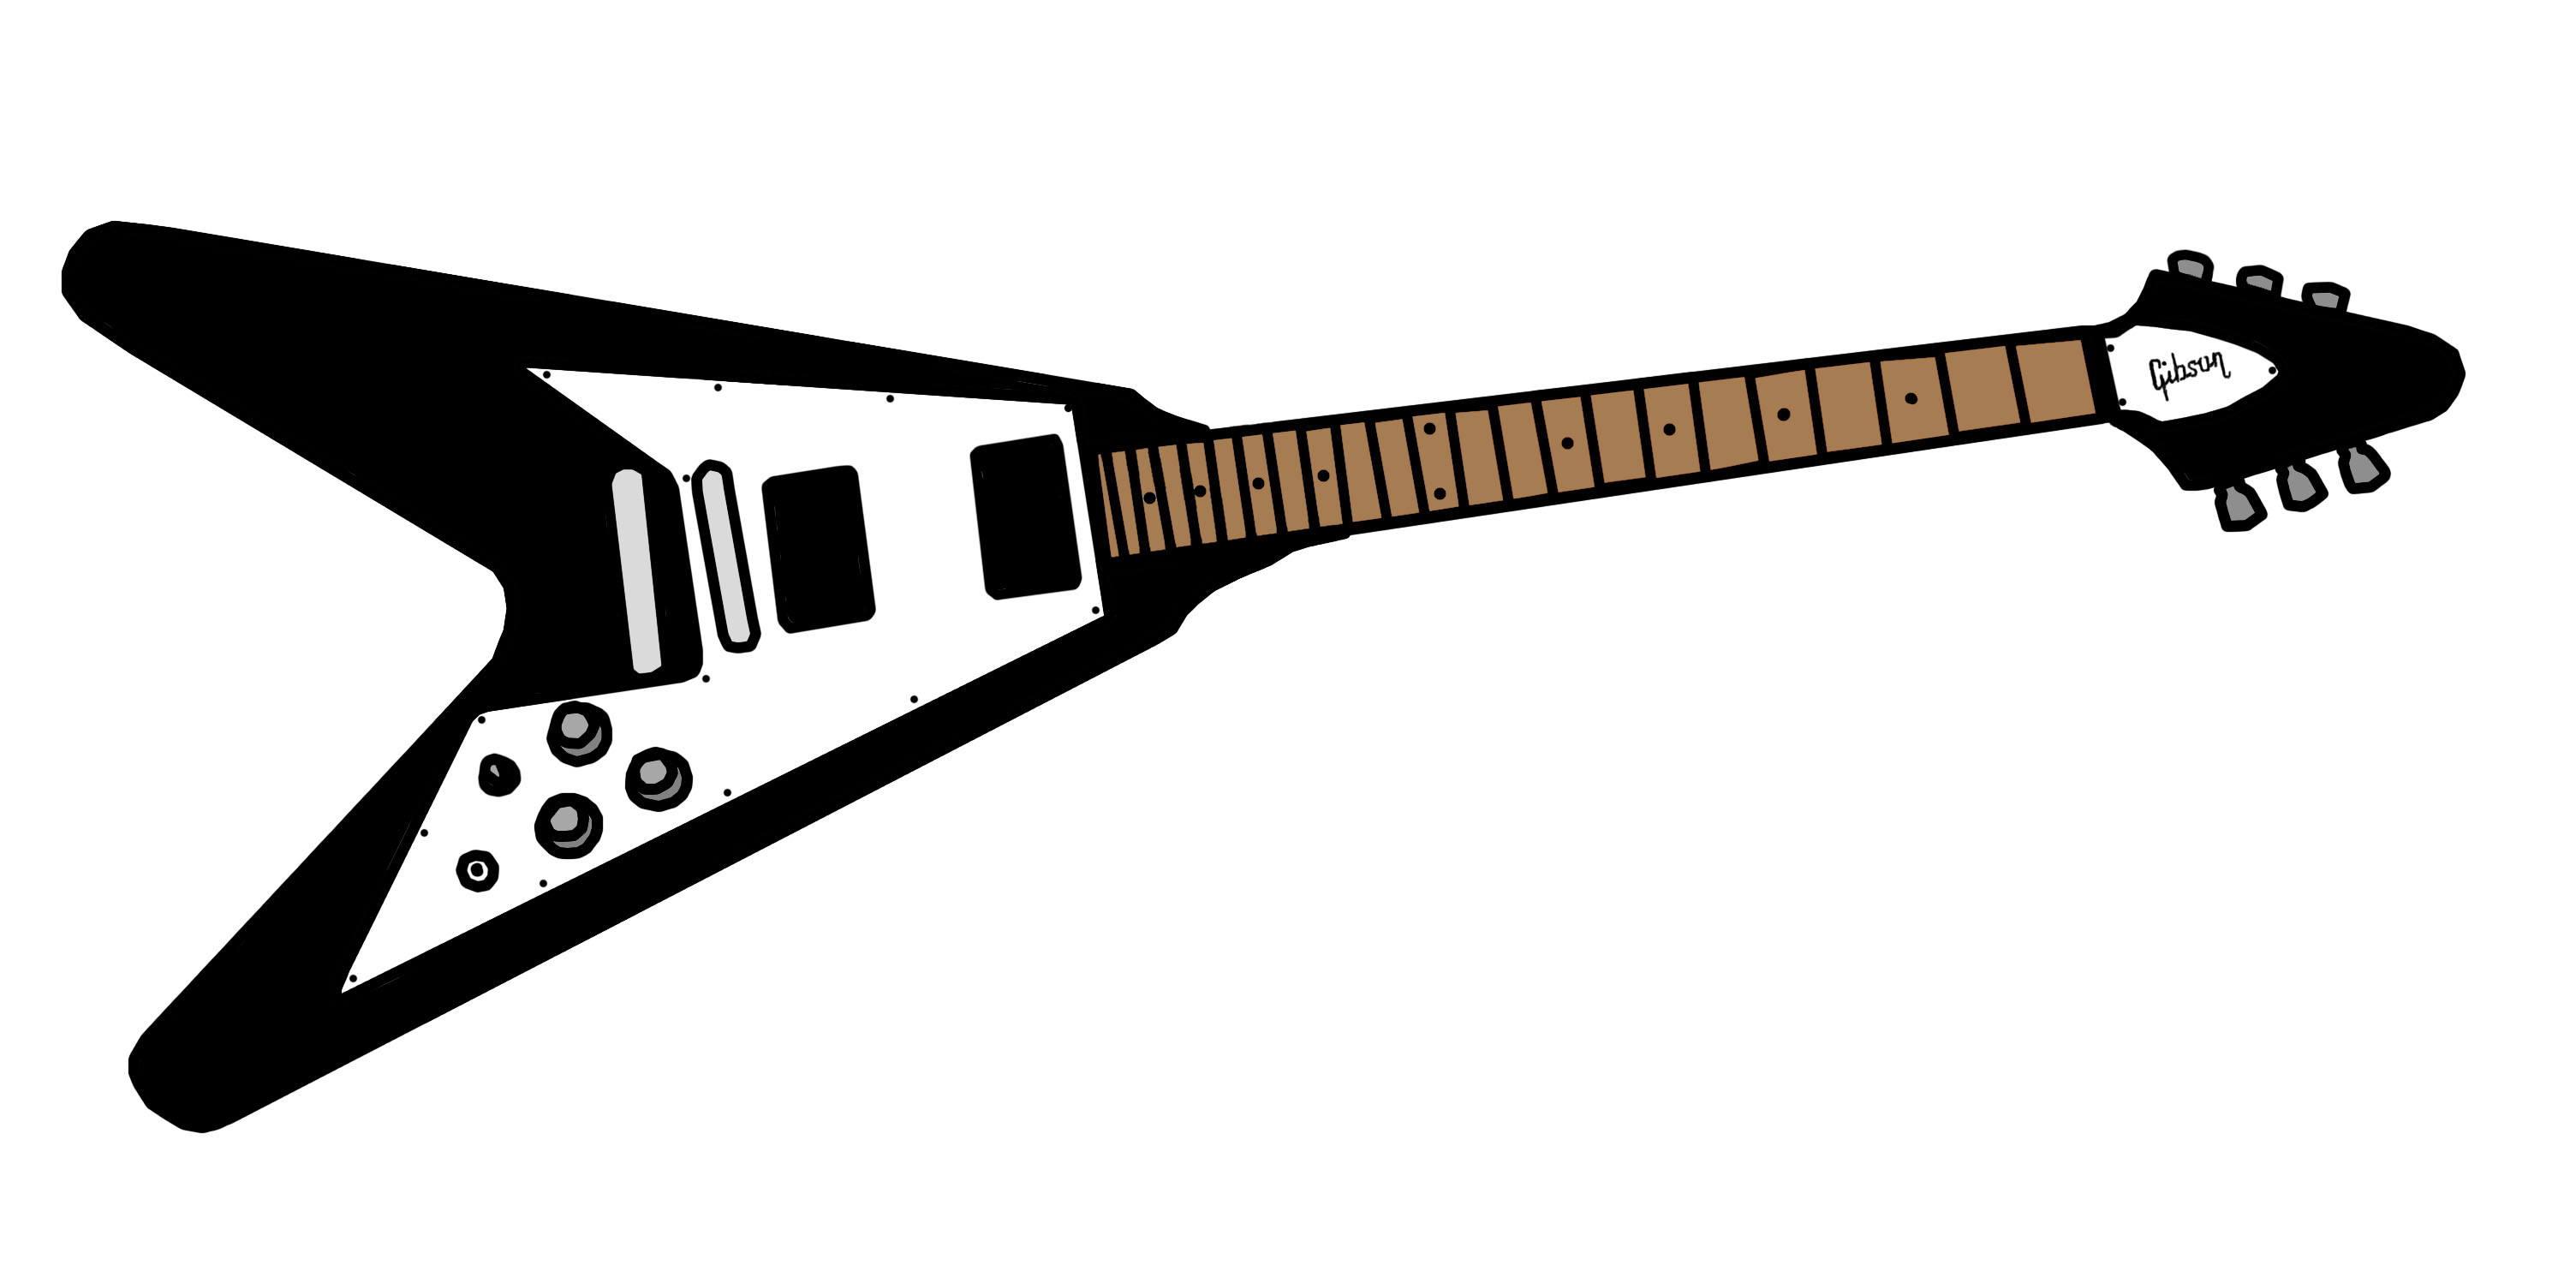 Gibson Flying V Colored 64493641 further Strat Wiring Diagram Schematic further 5 Ways To Play The E Chord On Guitar additionally Pearl Flutes Pf505 Re Quantz Flauto Traverso 9240 additionally Golden age humbucker. on gibson strings